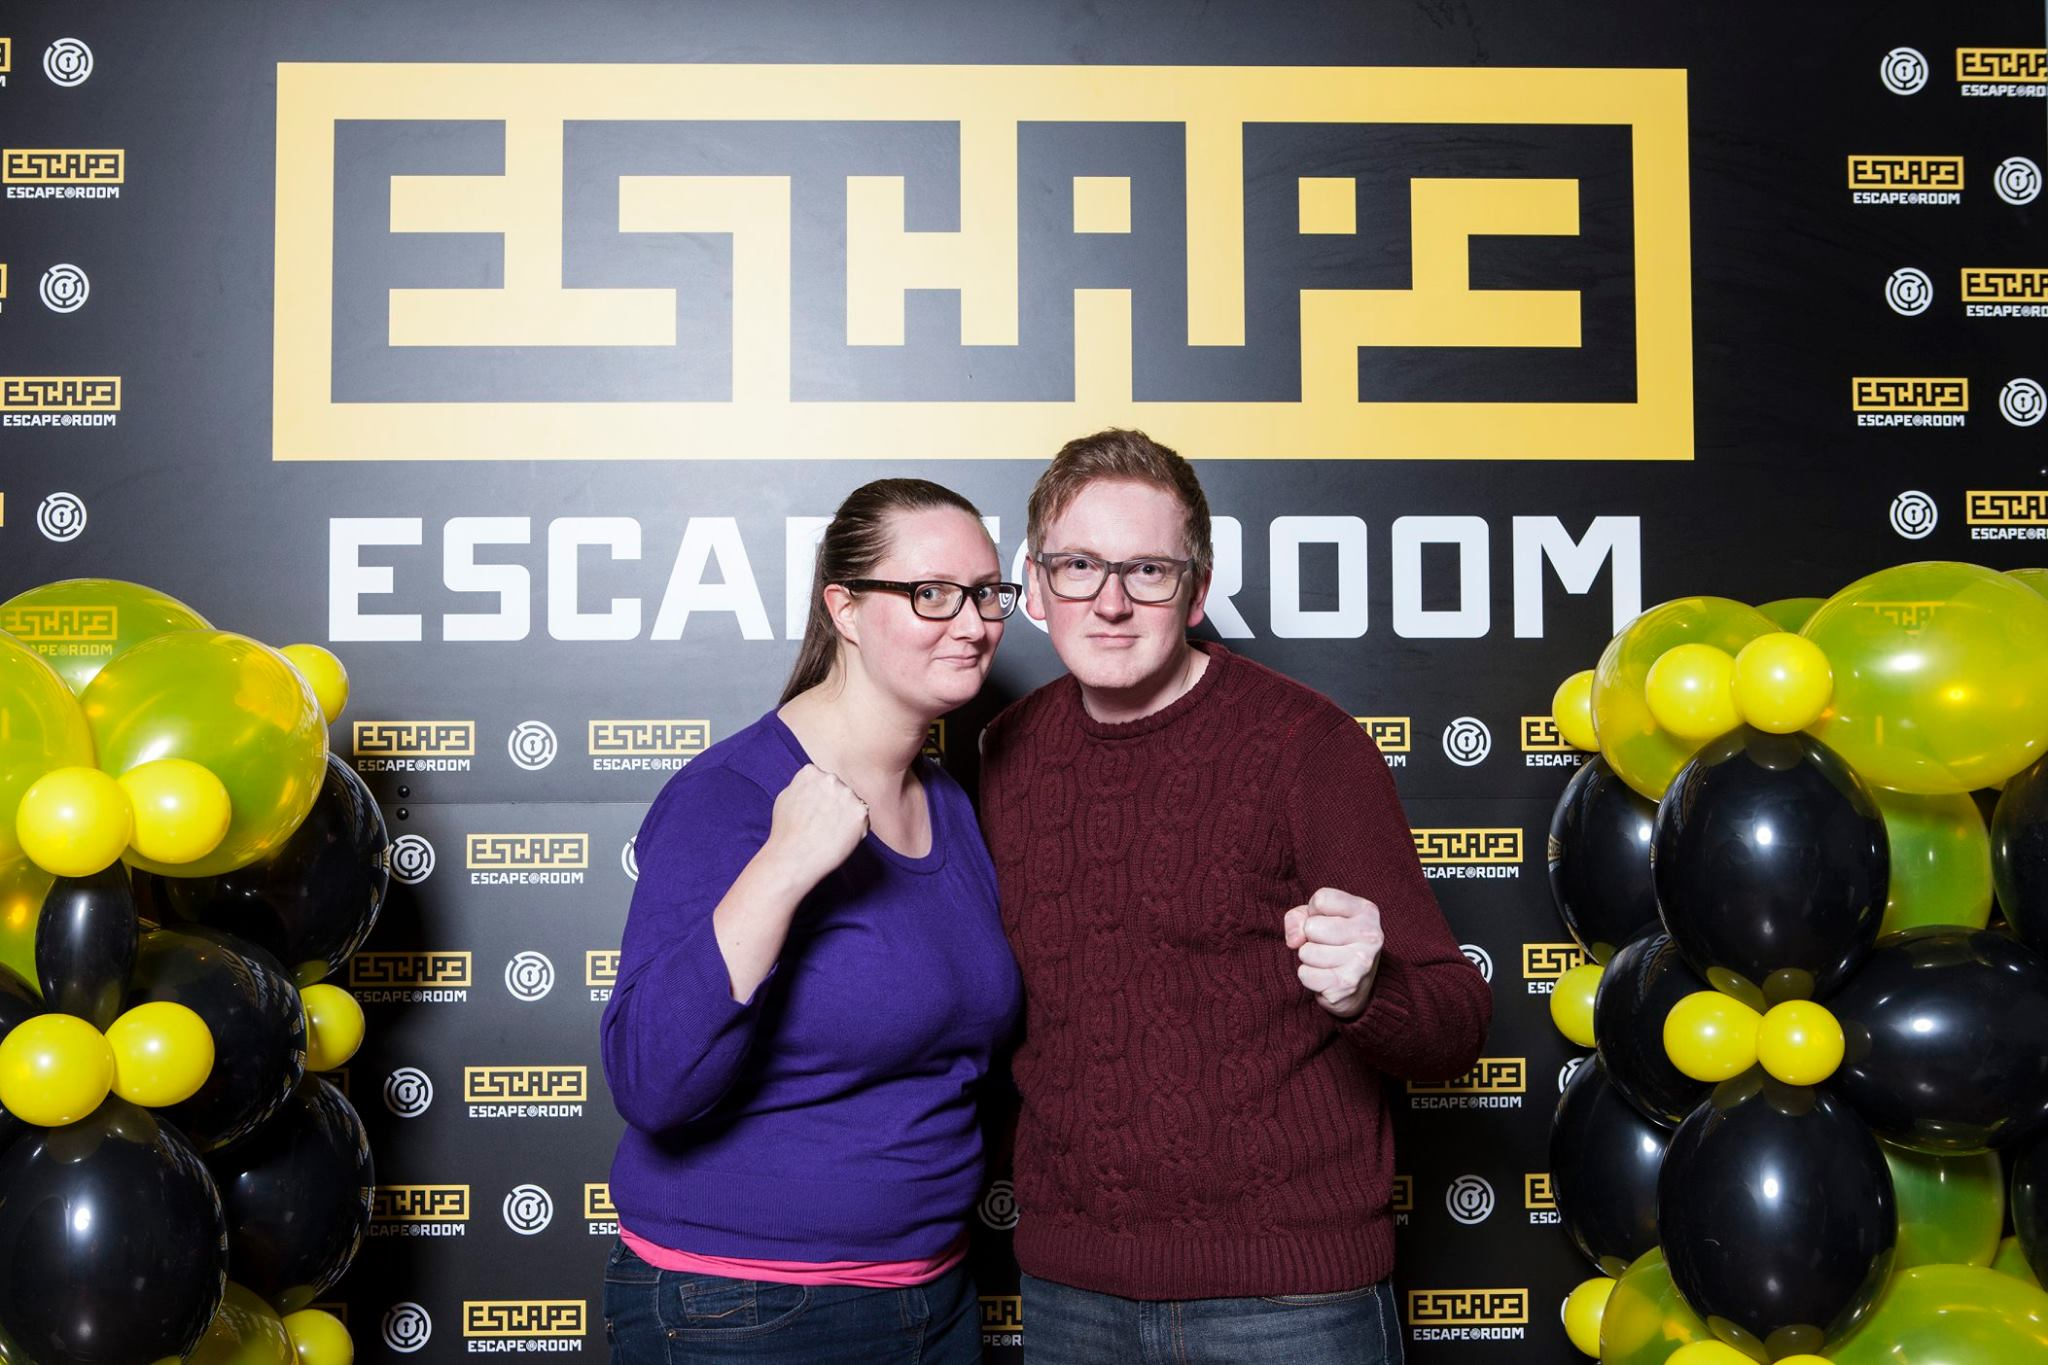 Escape Room, Manchester – The launch